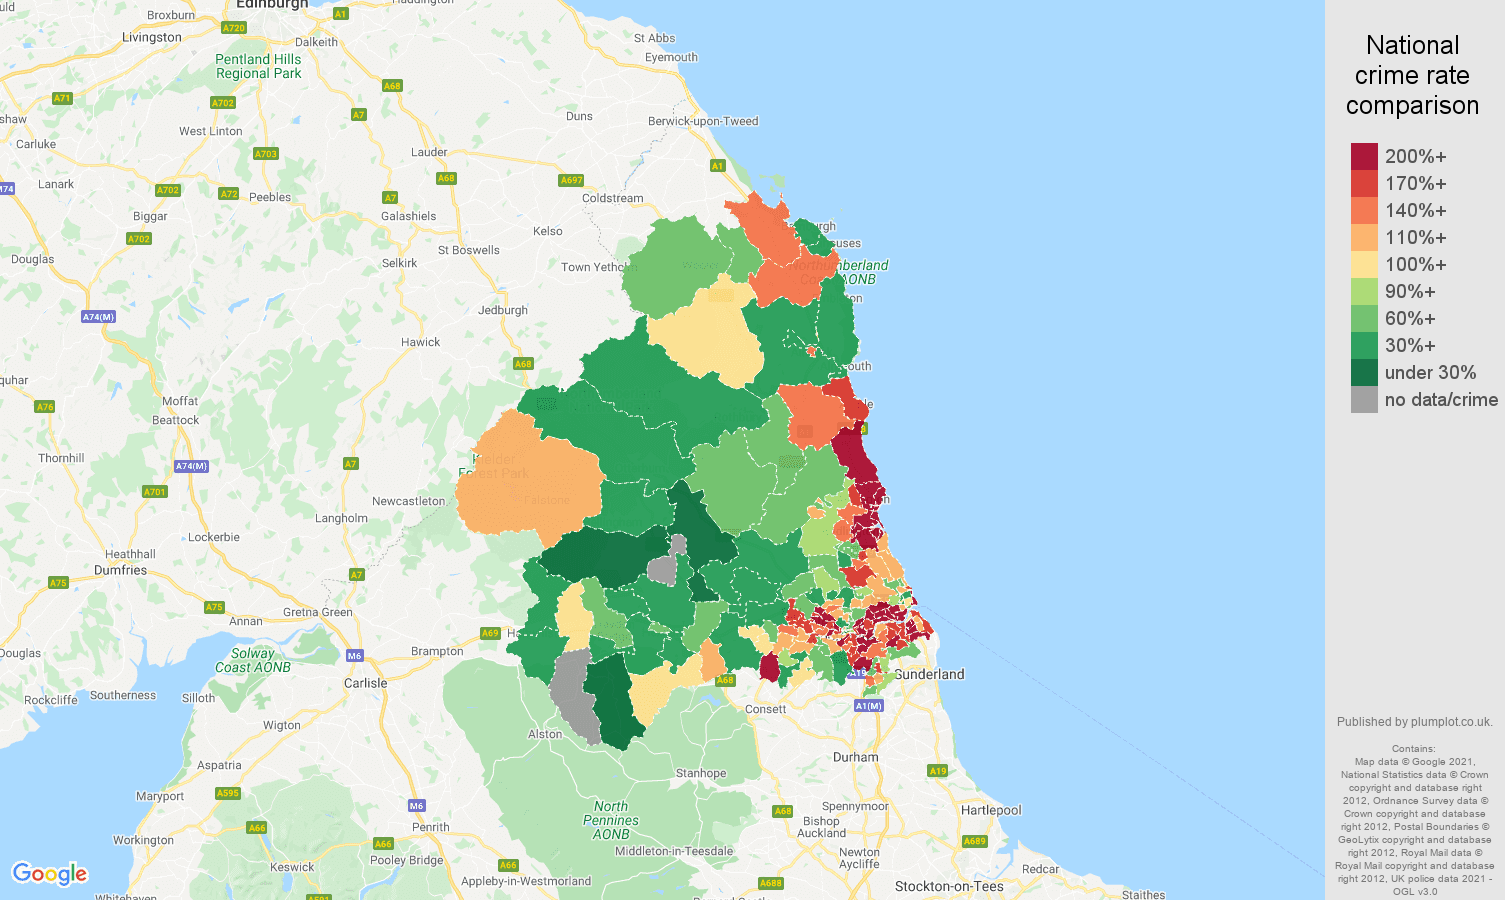 Newcastle upon Tyne criminal damage and arson crime rate comparison map